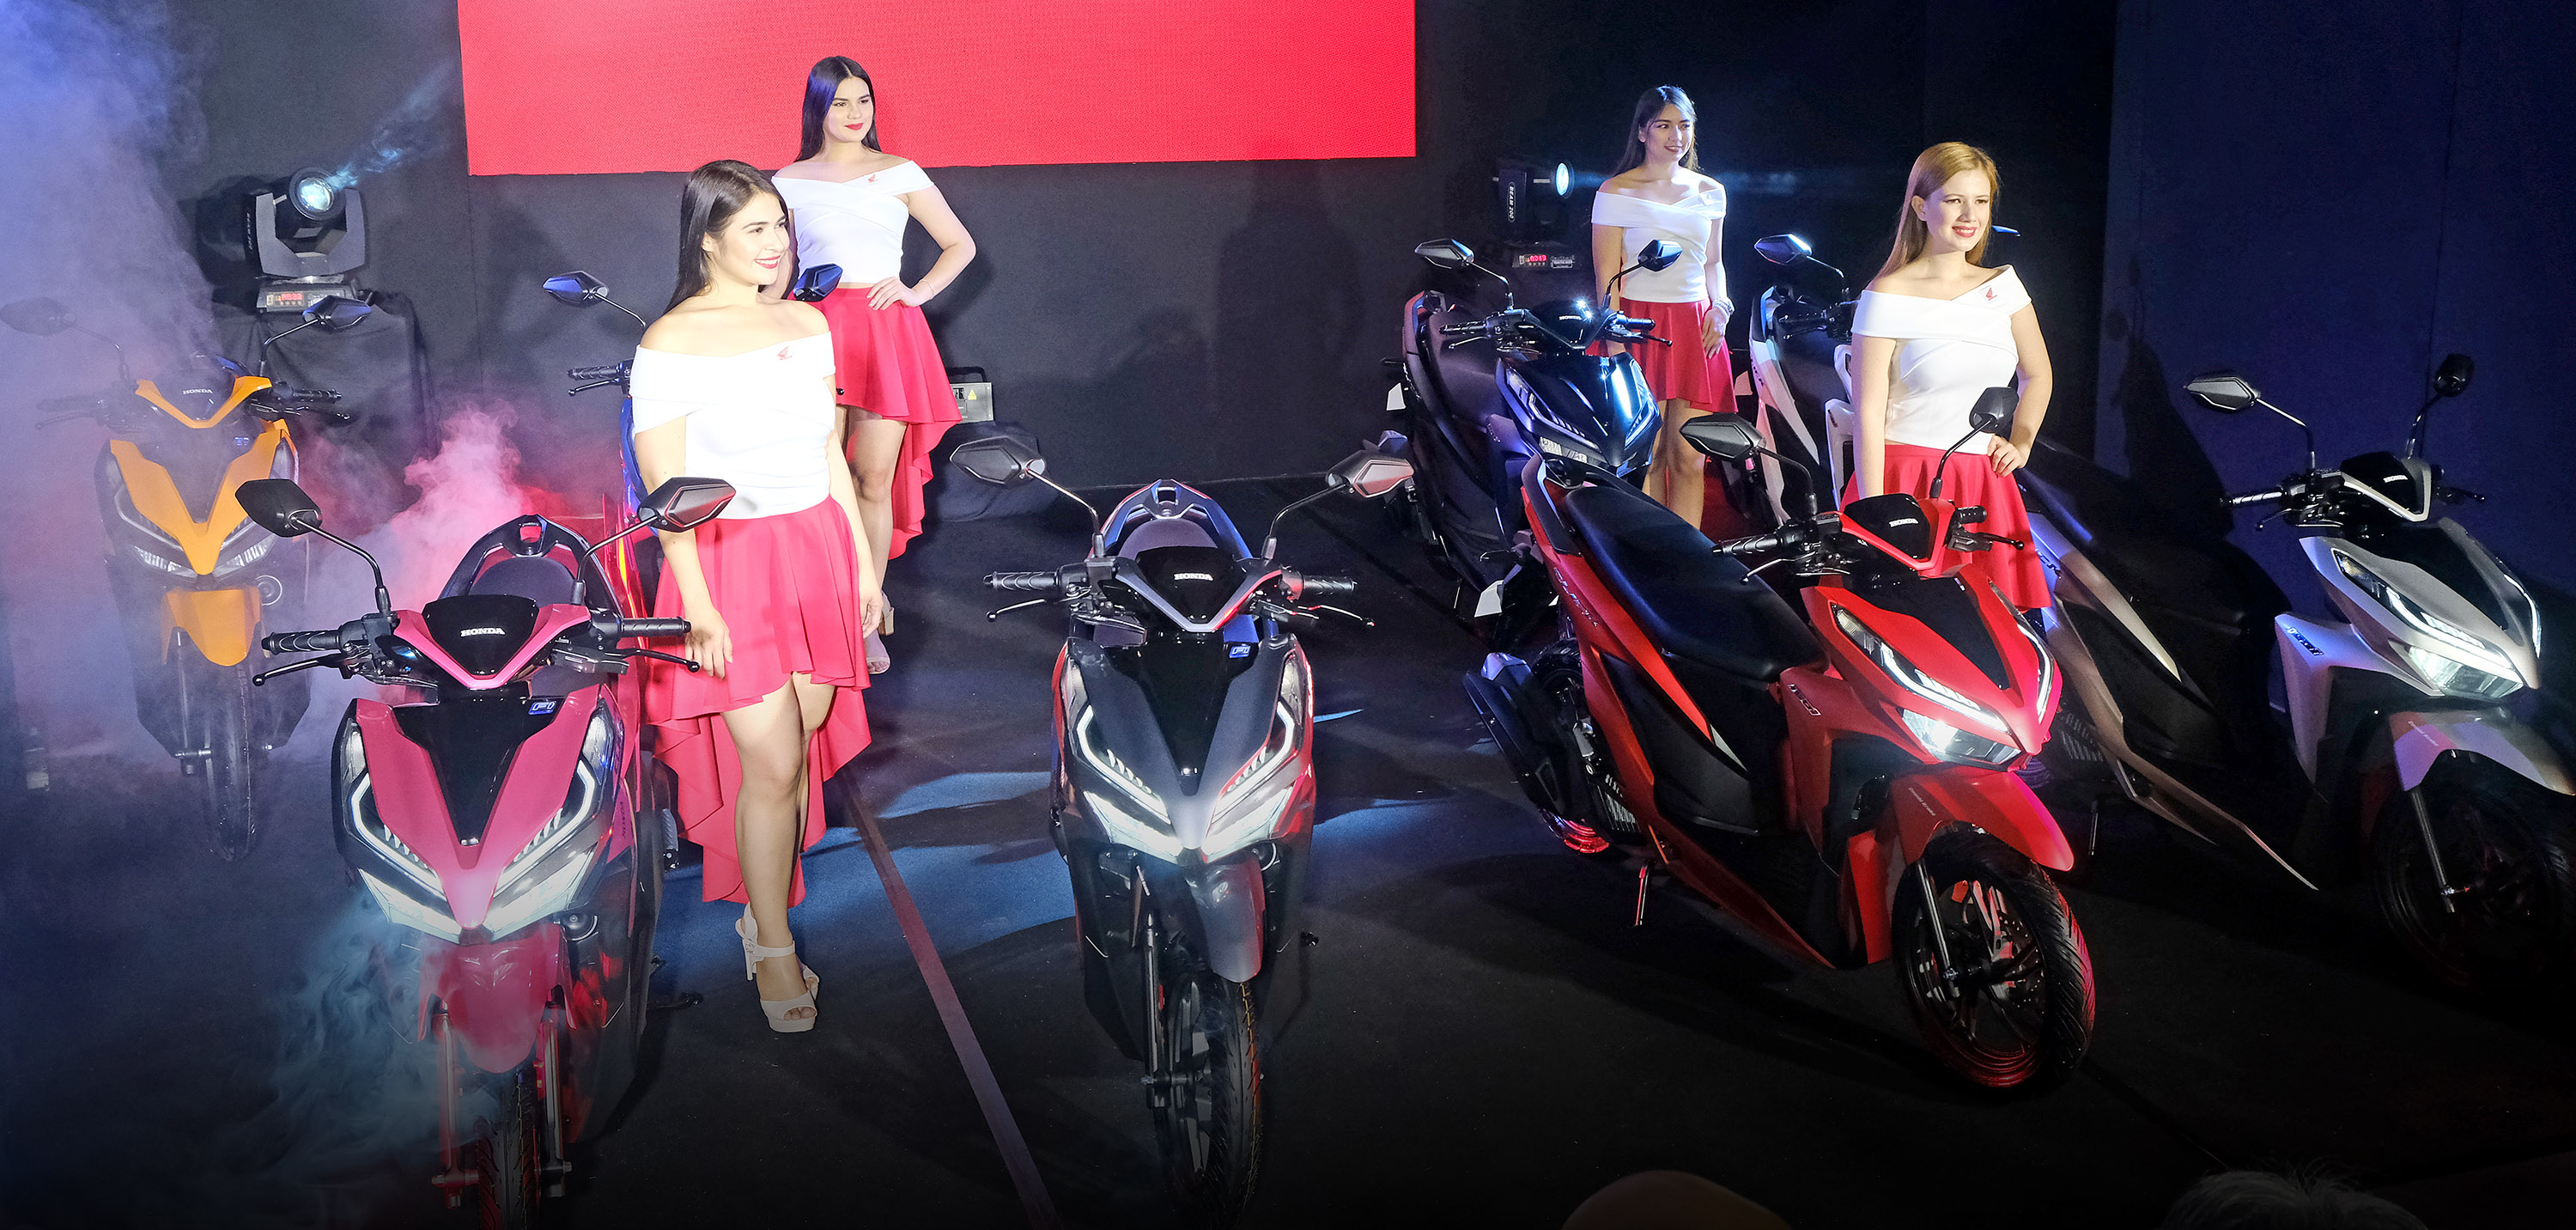 Honda officially unveiled its game changing AT models: CLICK 125i and CLICK 150i